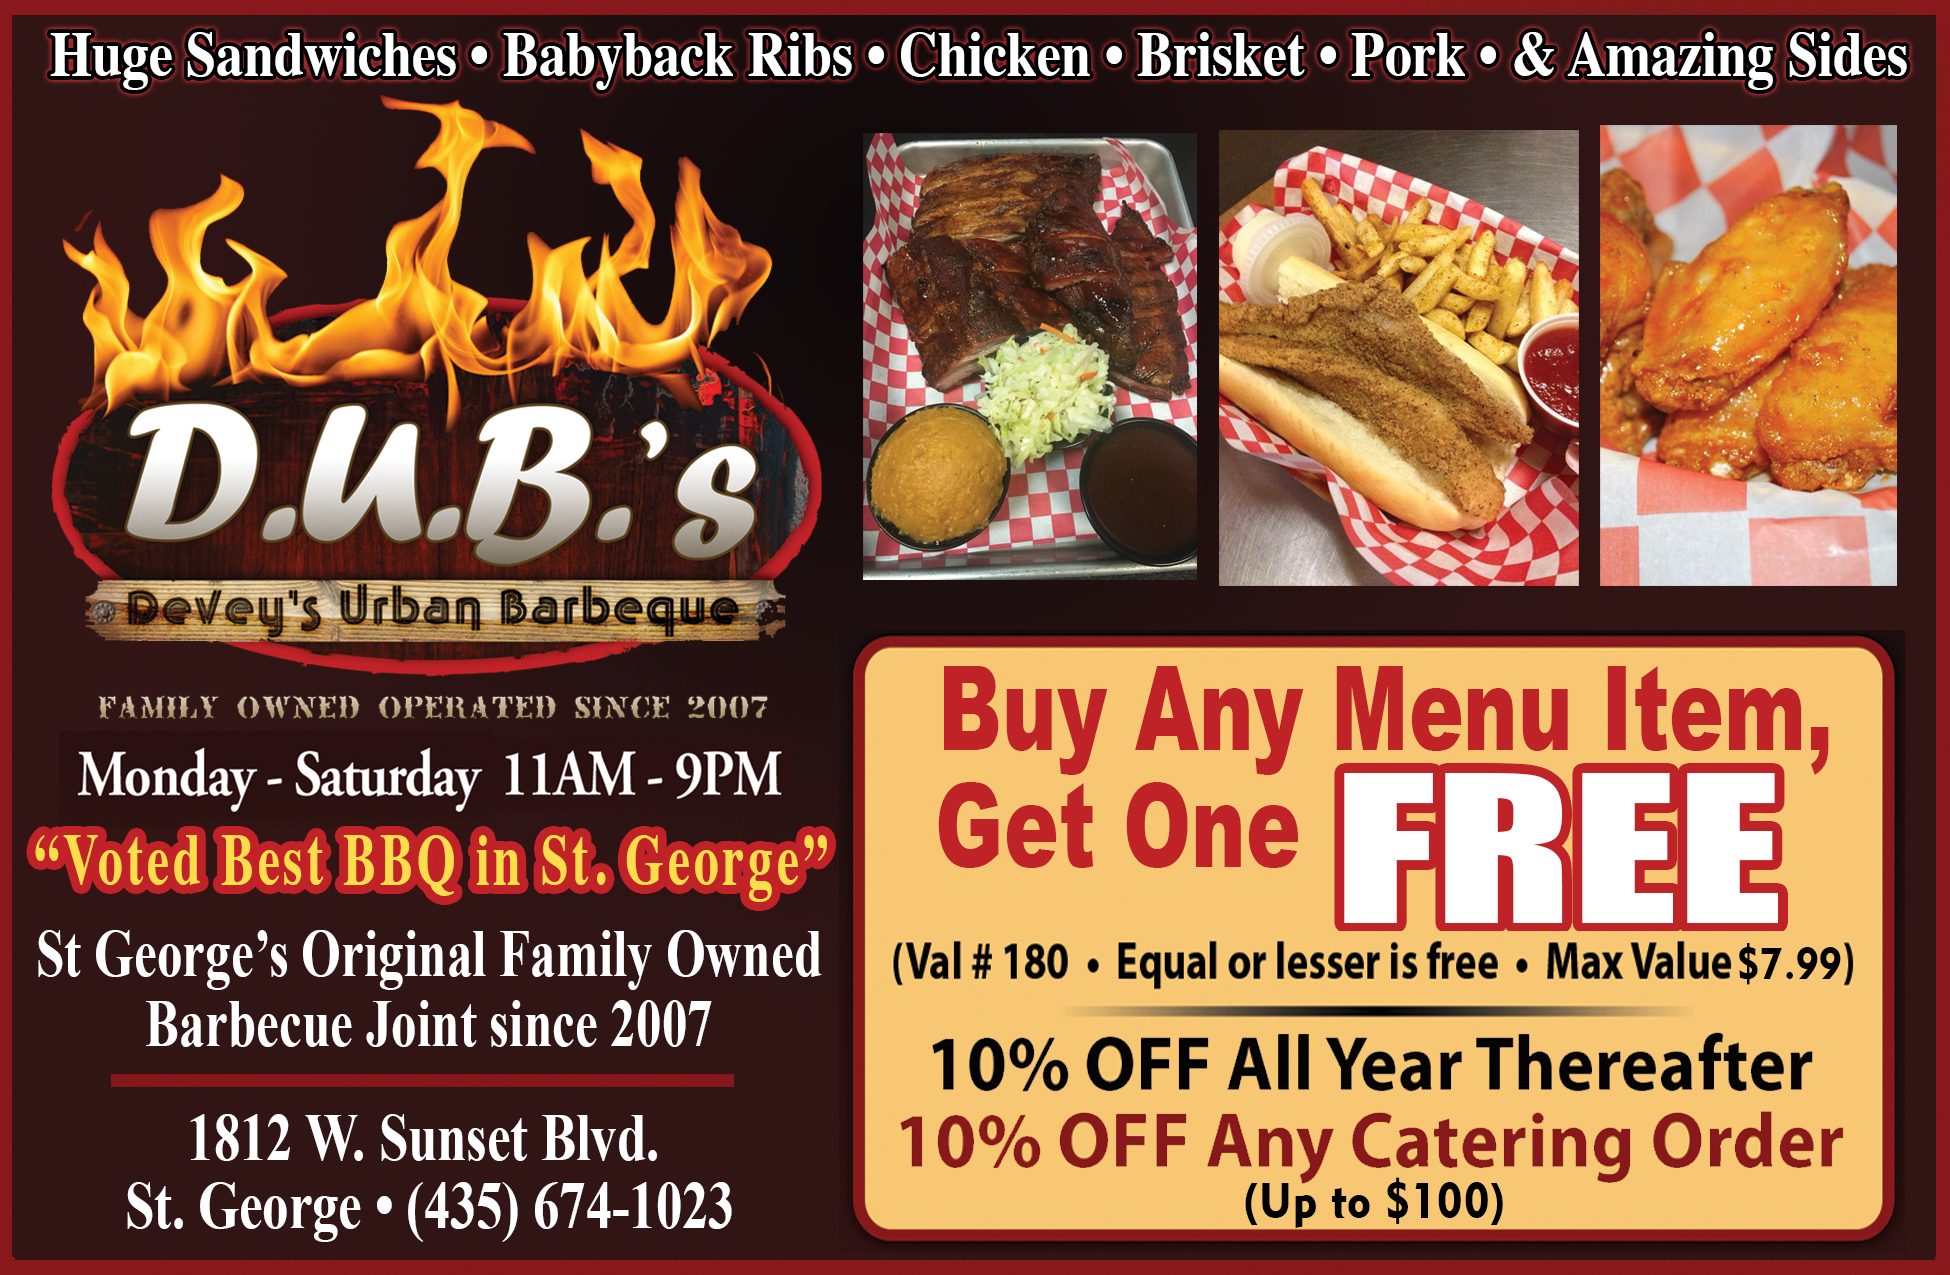 .U.B.S Deveys Urban Barbeque - family owned and operated